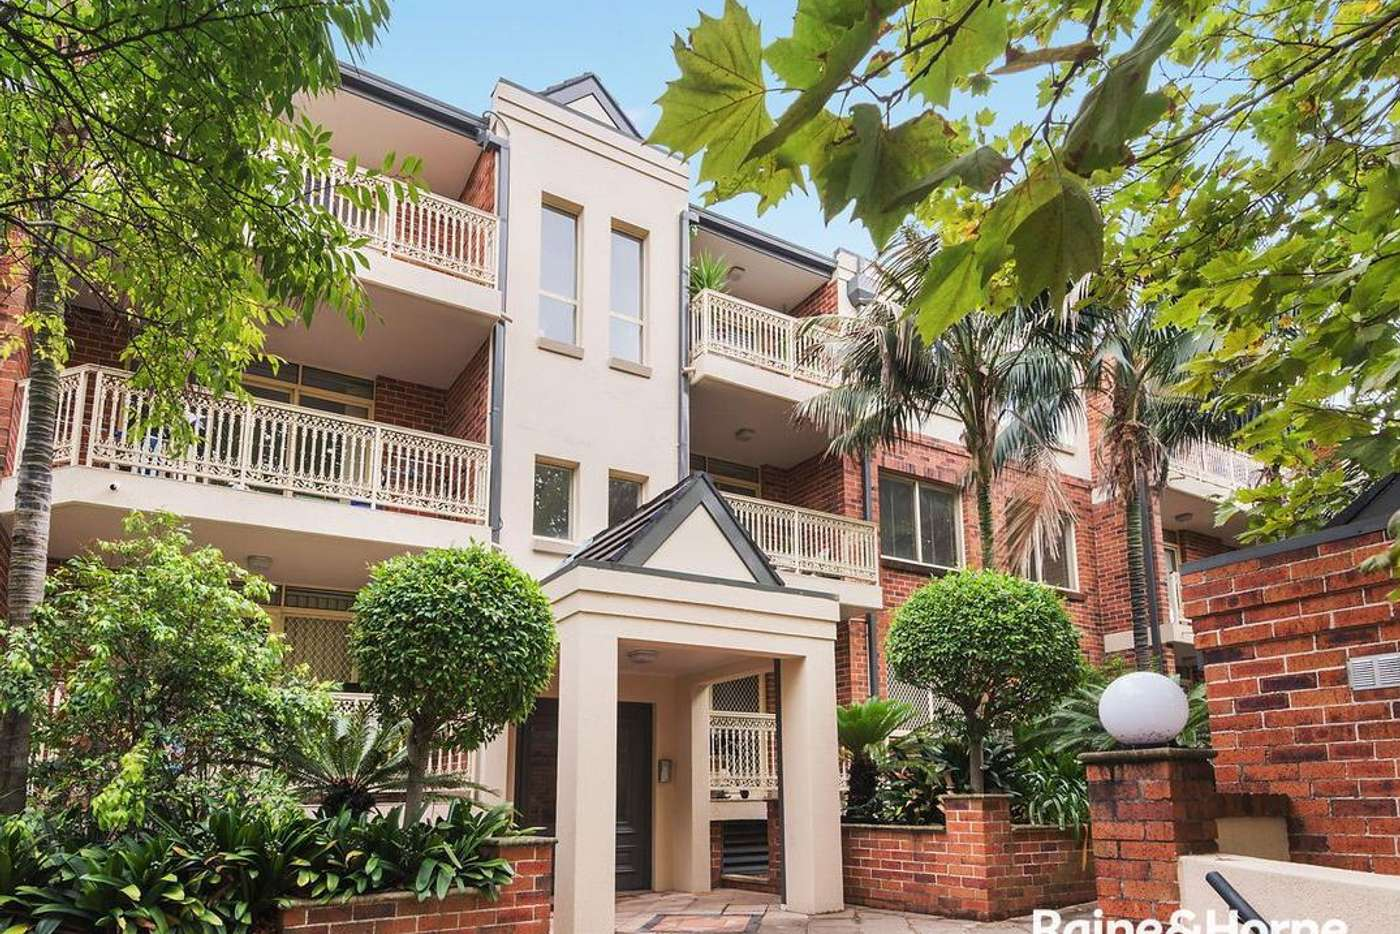 Main view of Homely apartment listing, 25/158 Alison Road, Randwick NSW 2031